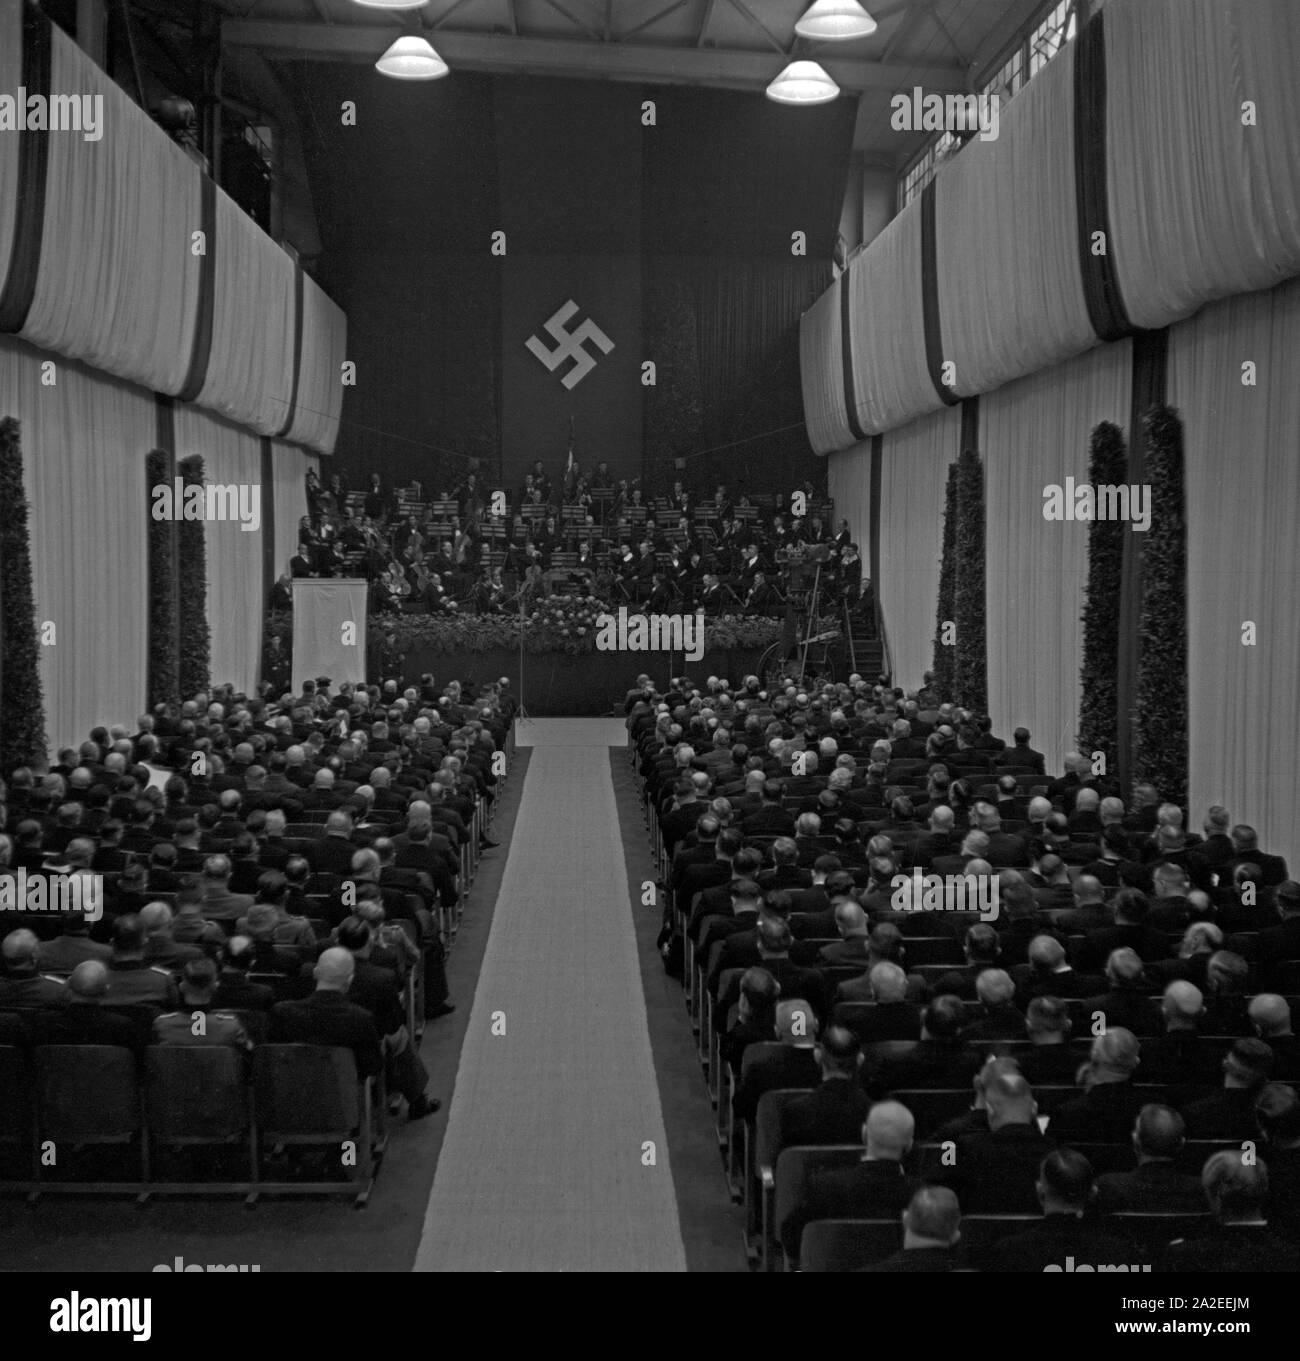 Das Publikum hört eine Rede anläßlich der Dieselfeier im MAN Werk Augsburg, Deutschland 1930er Jahre. An audience listening to a speech at a Diesel anniversary at the MAN factory Augsburg, Germany 1930s. Stock Photo